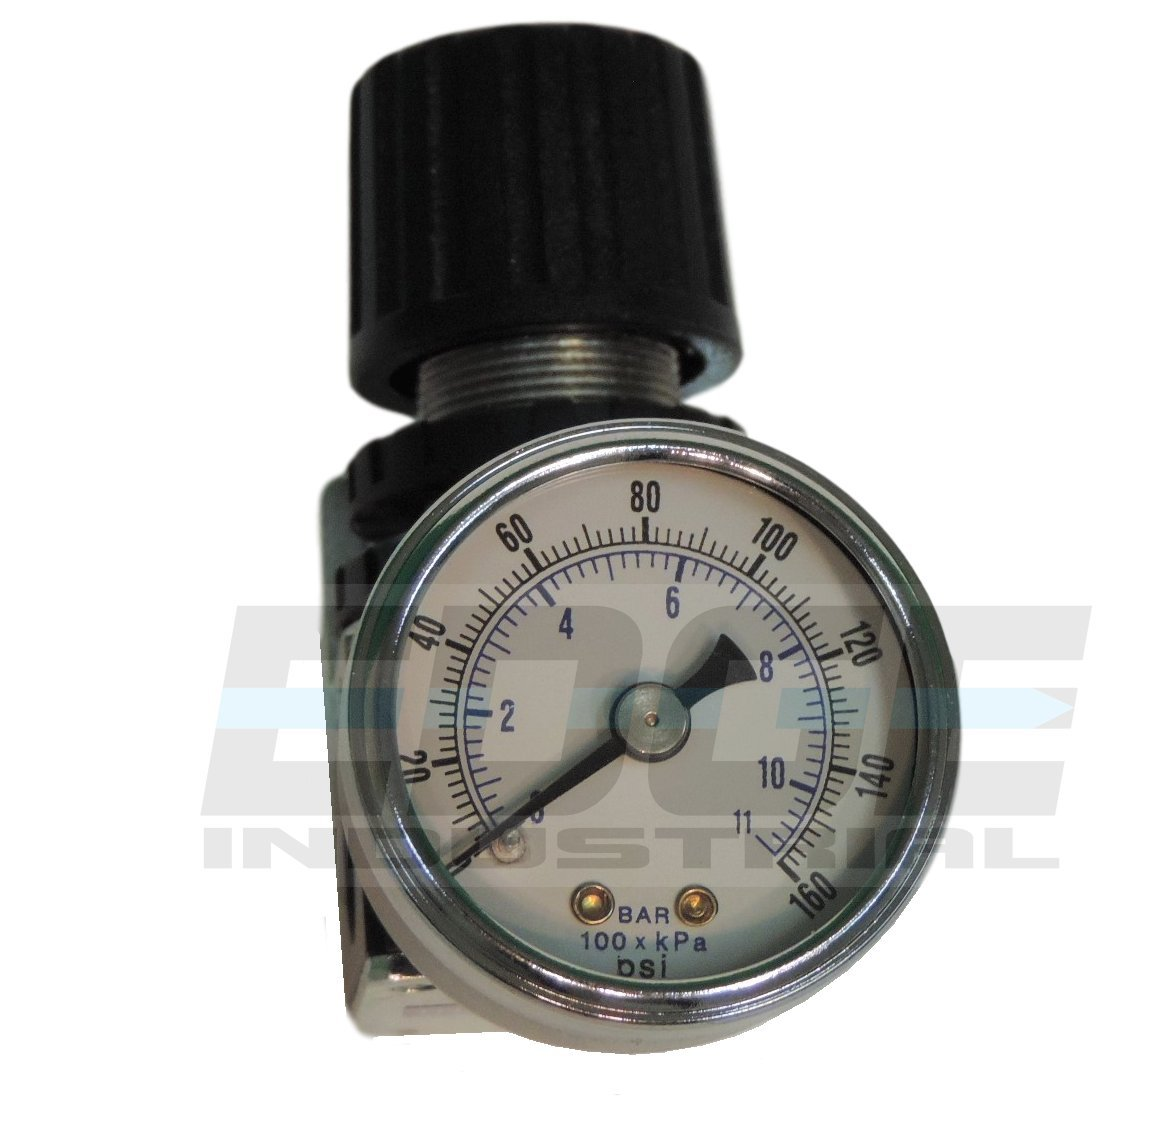 ADJUST 7 TO 140 PSI MINI PRESSURE REGULATOR FOR COMPRESSED AIR SYSTEMS 1//4 NPT PORTS